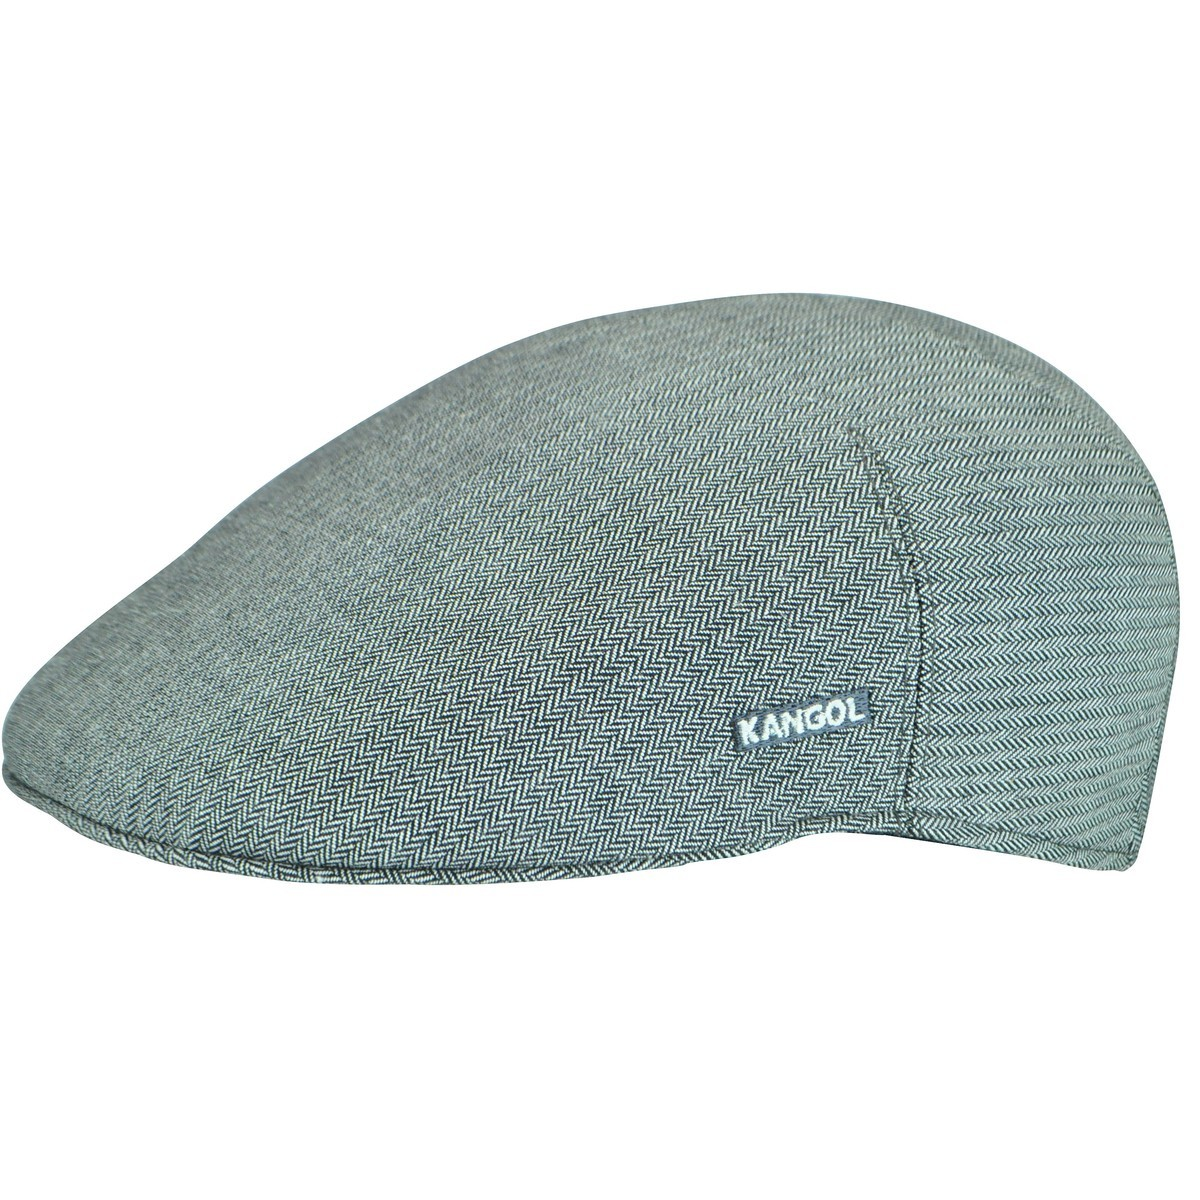 Kangol カンゴール Tweed Milano Cap Canvas Herringbone Ivy Caps & Flat Caps 帽子 Canvas Herringbone